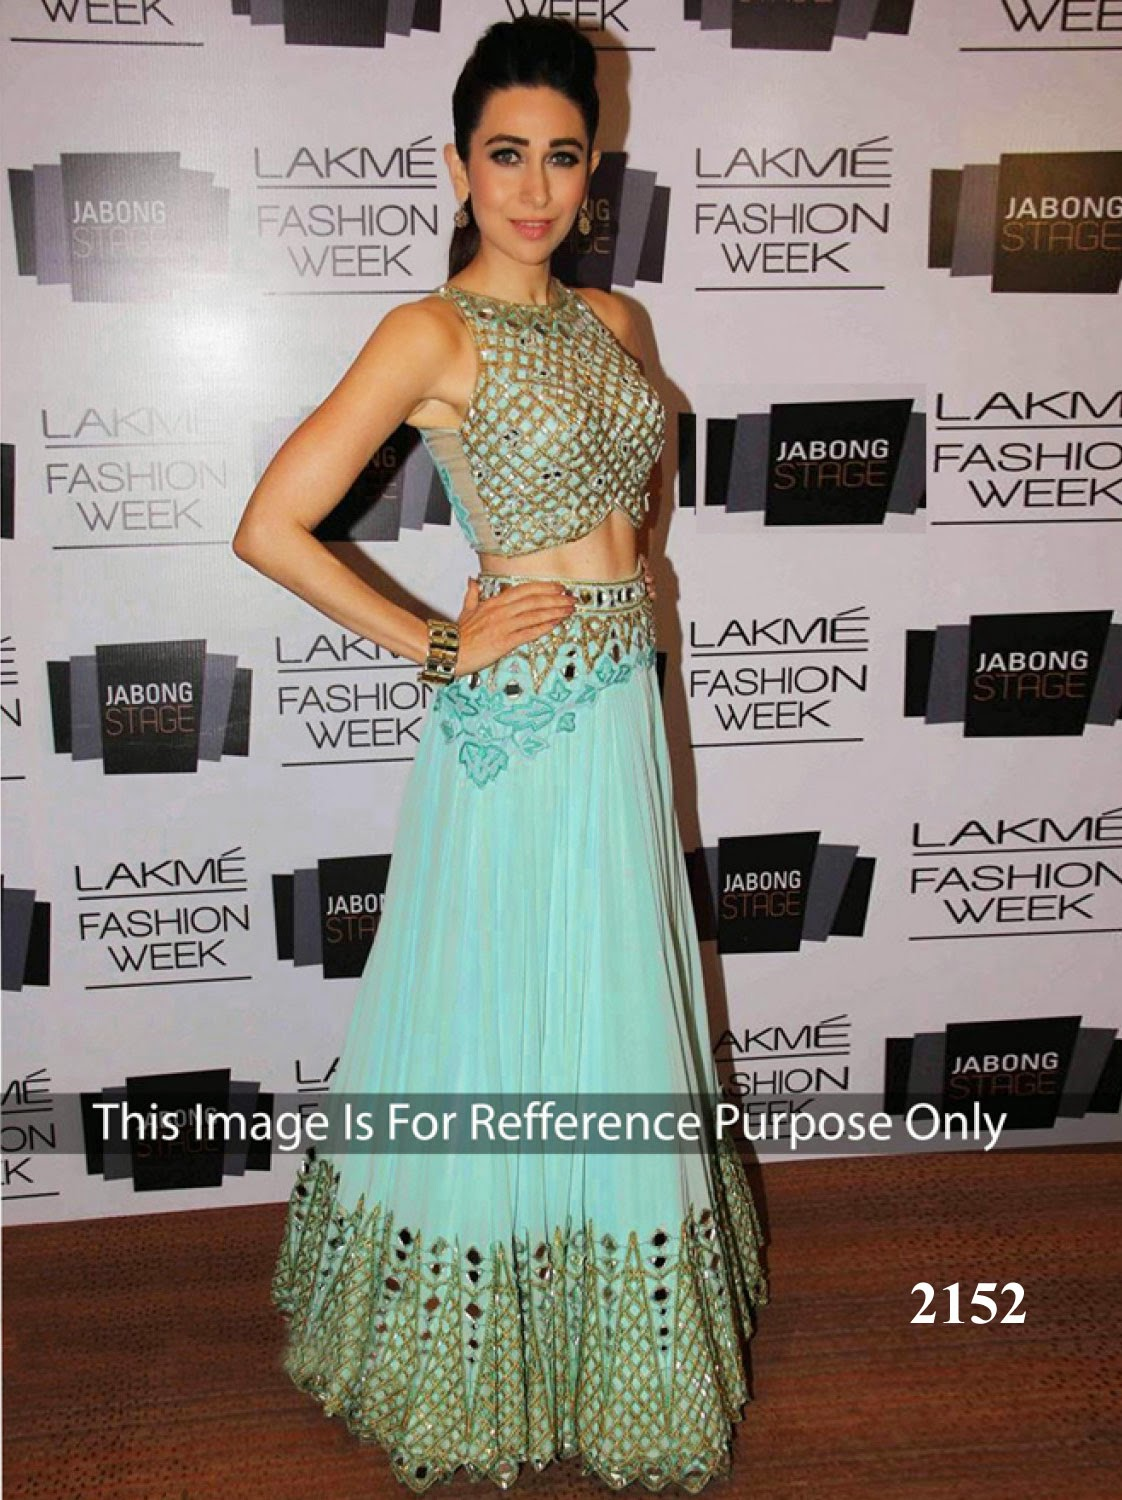 Bollywood Replica- Suits Sarees Lehengas: bollywood fashion online